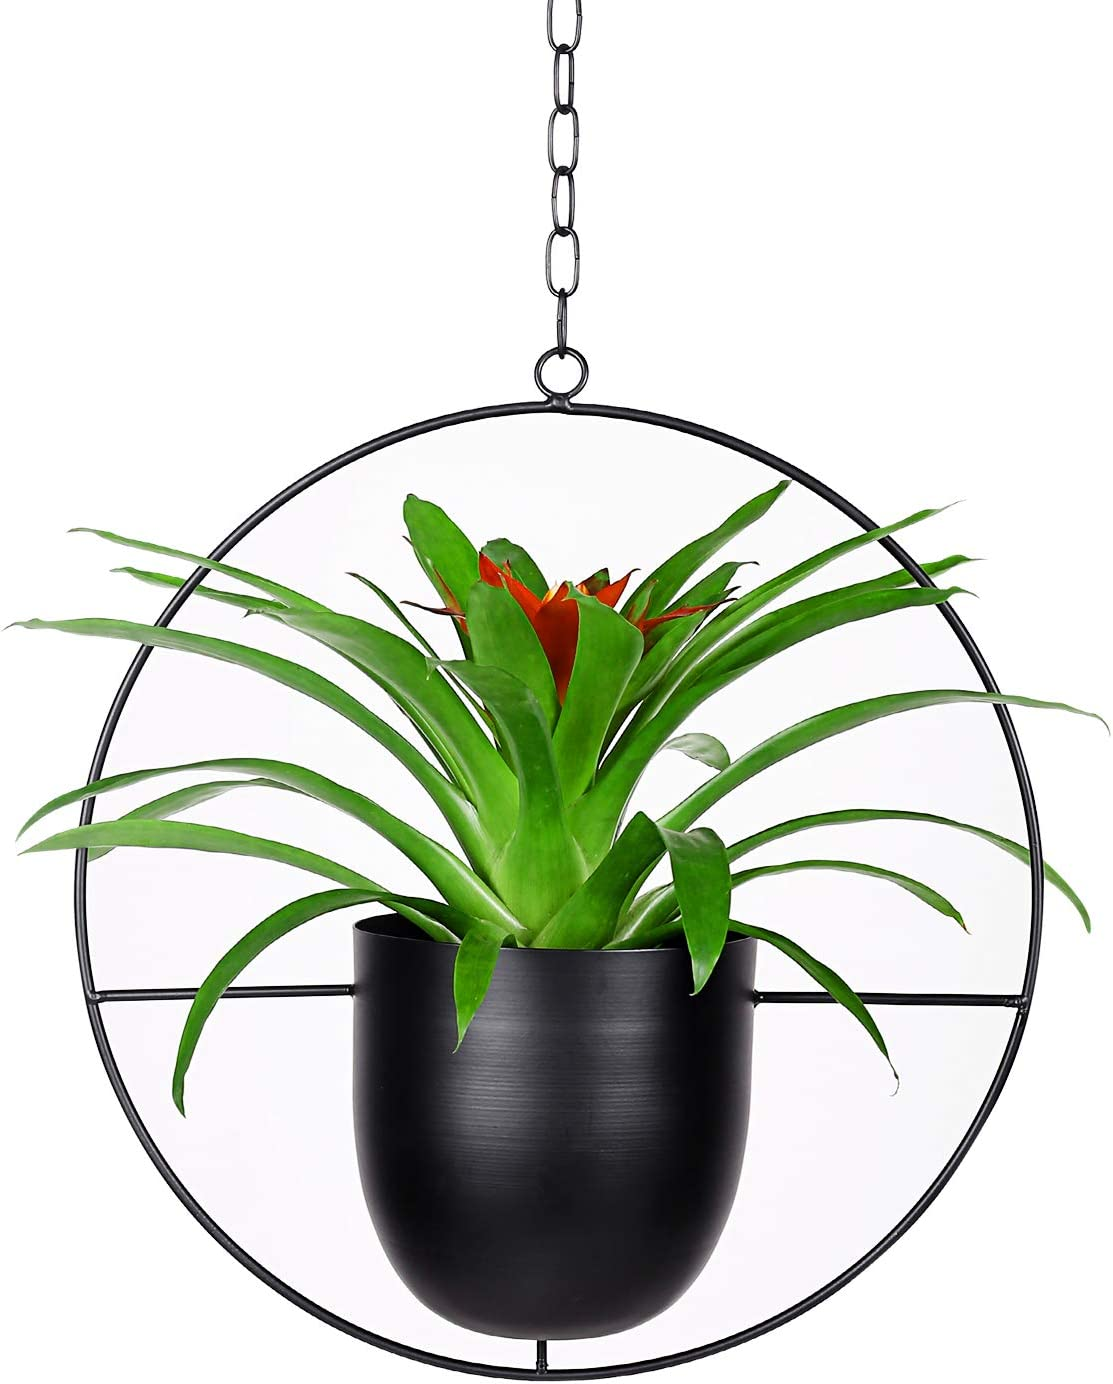 Metal Round Plant Hanger with Flower Pot (Upgraded), Ceiling and Wall Hanging Planter, Modern Hanging Plant, Mid Century Flower Pot Plant Holder for Indoor Outdoor Home Decor (Plants Not Included)